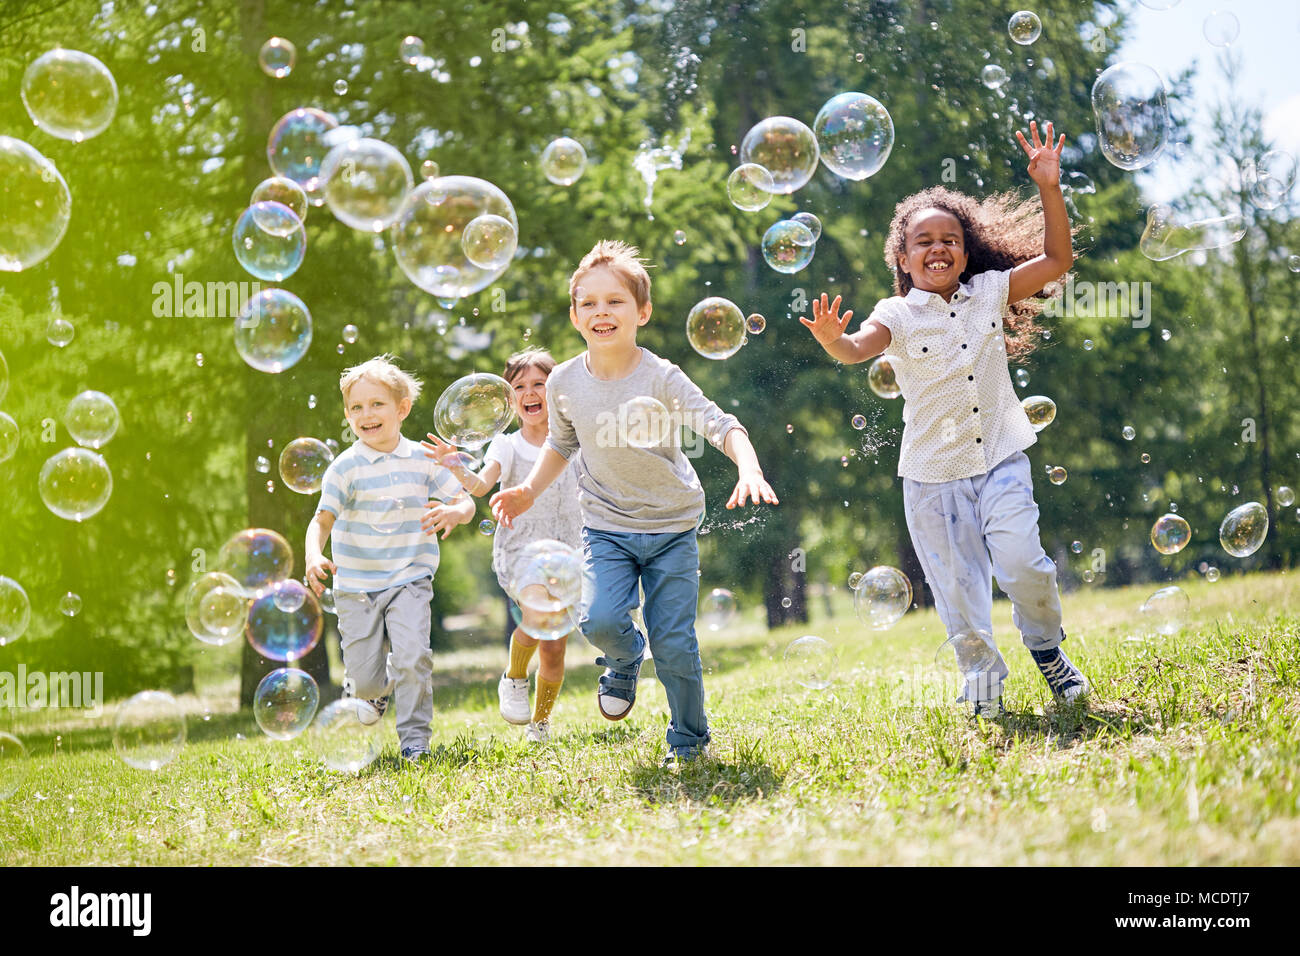 Little Kids Having Fun Outdoors - Stock Image